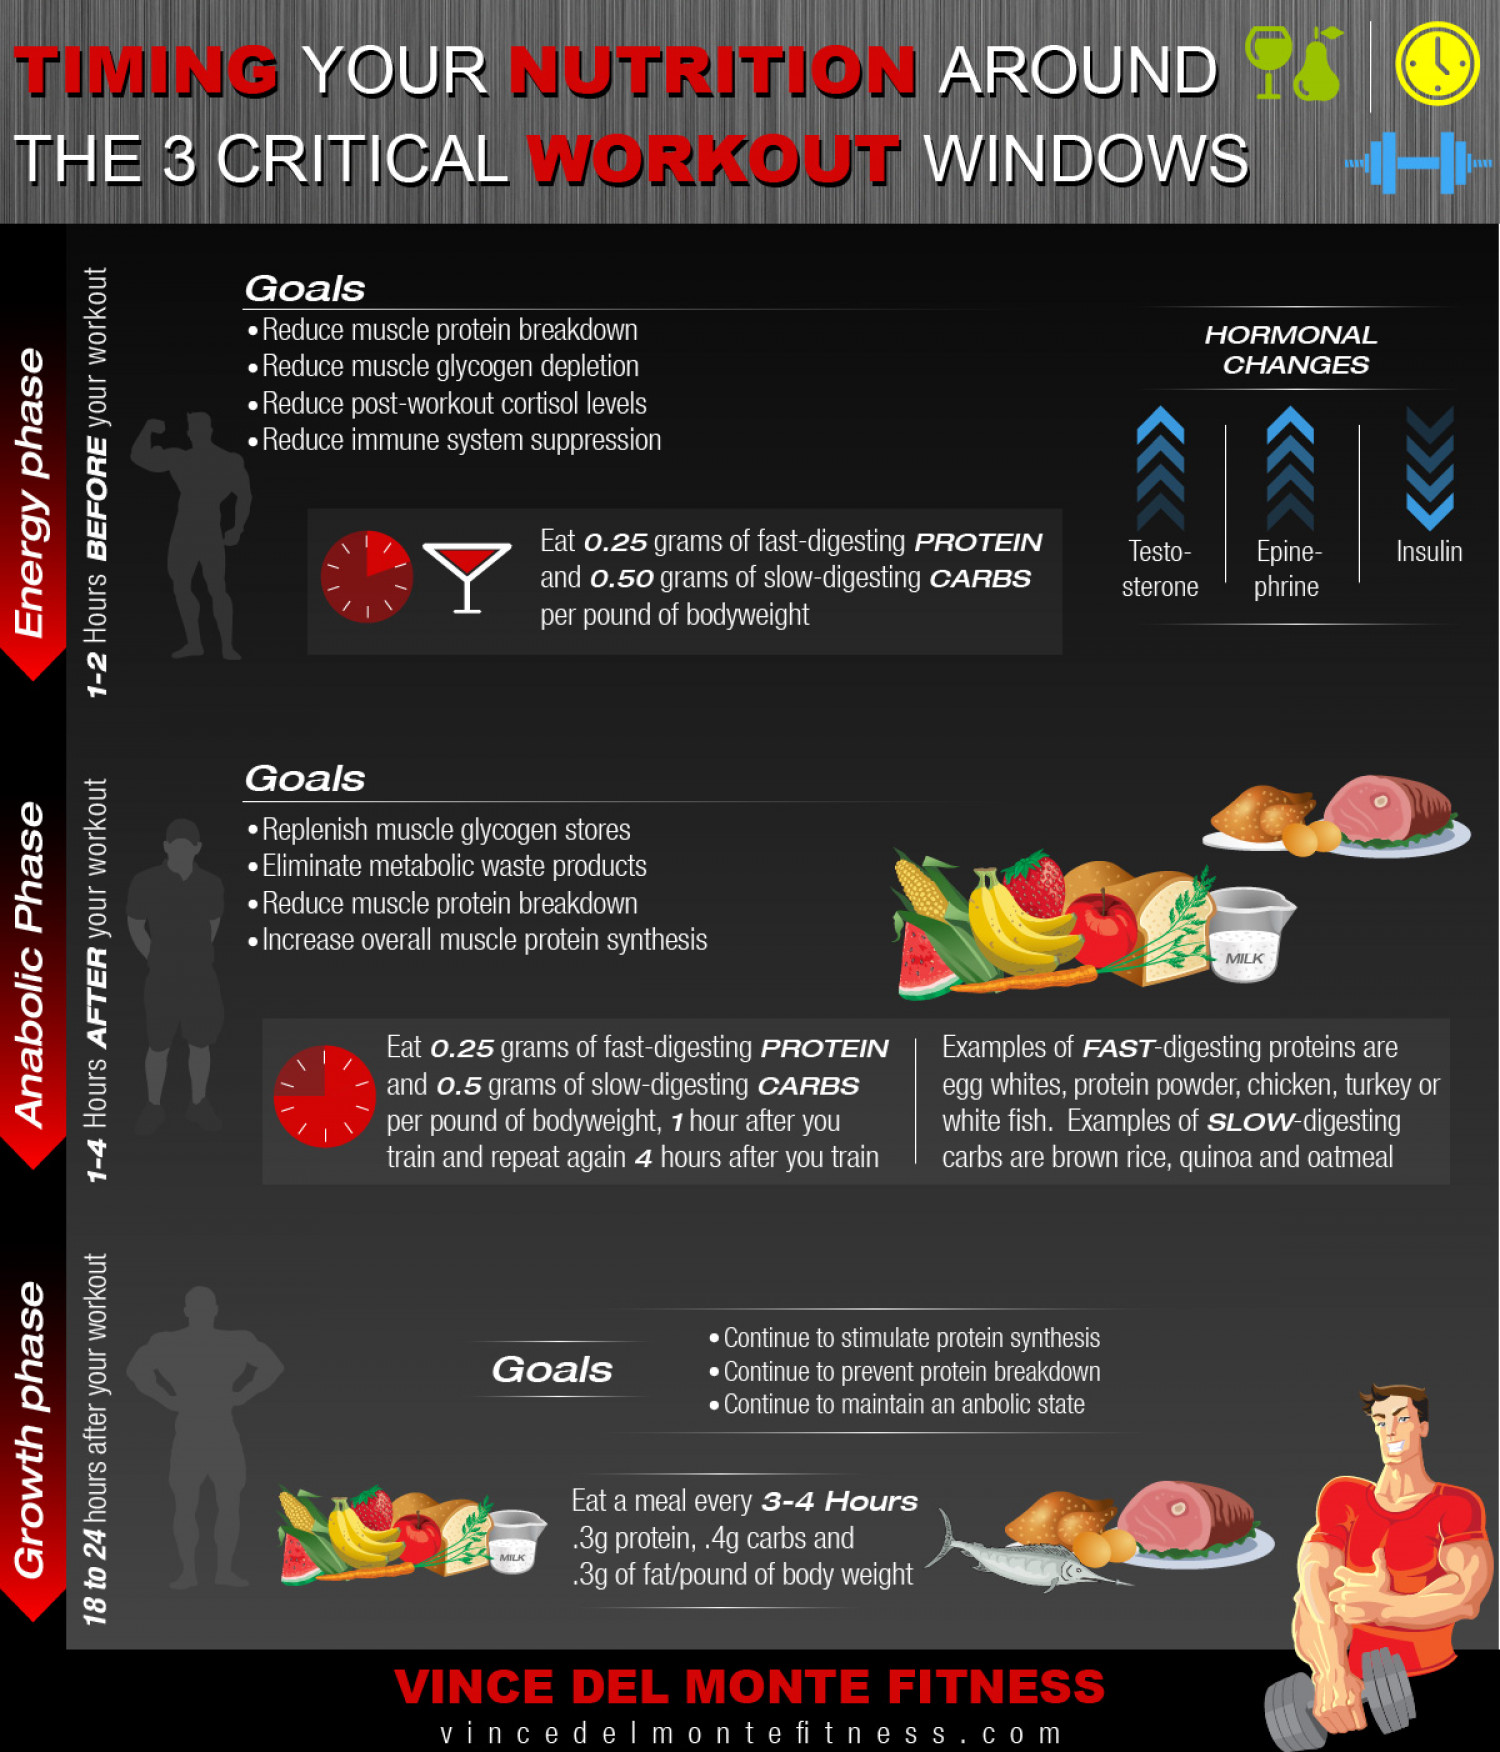 Timing Your Nutrition Around The 3 Critical Workout Windows Infographic